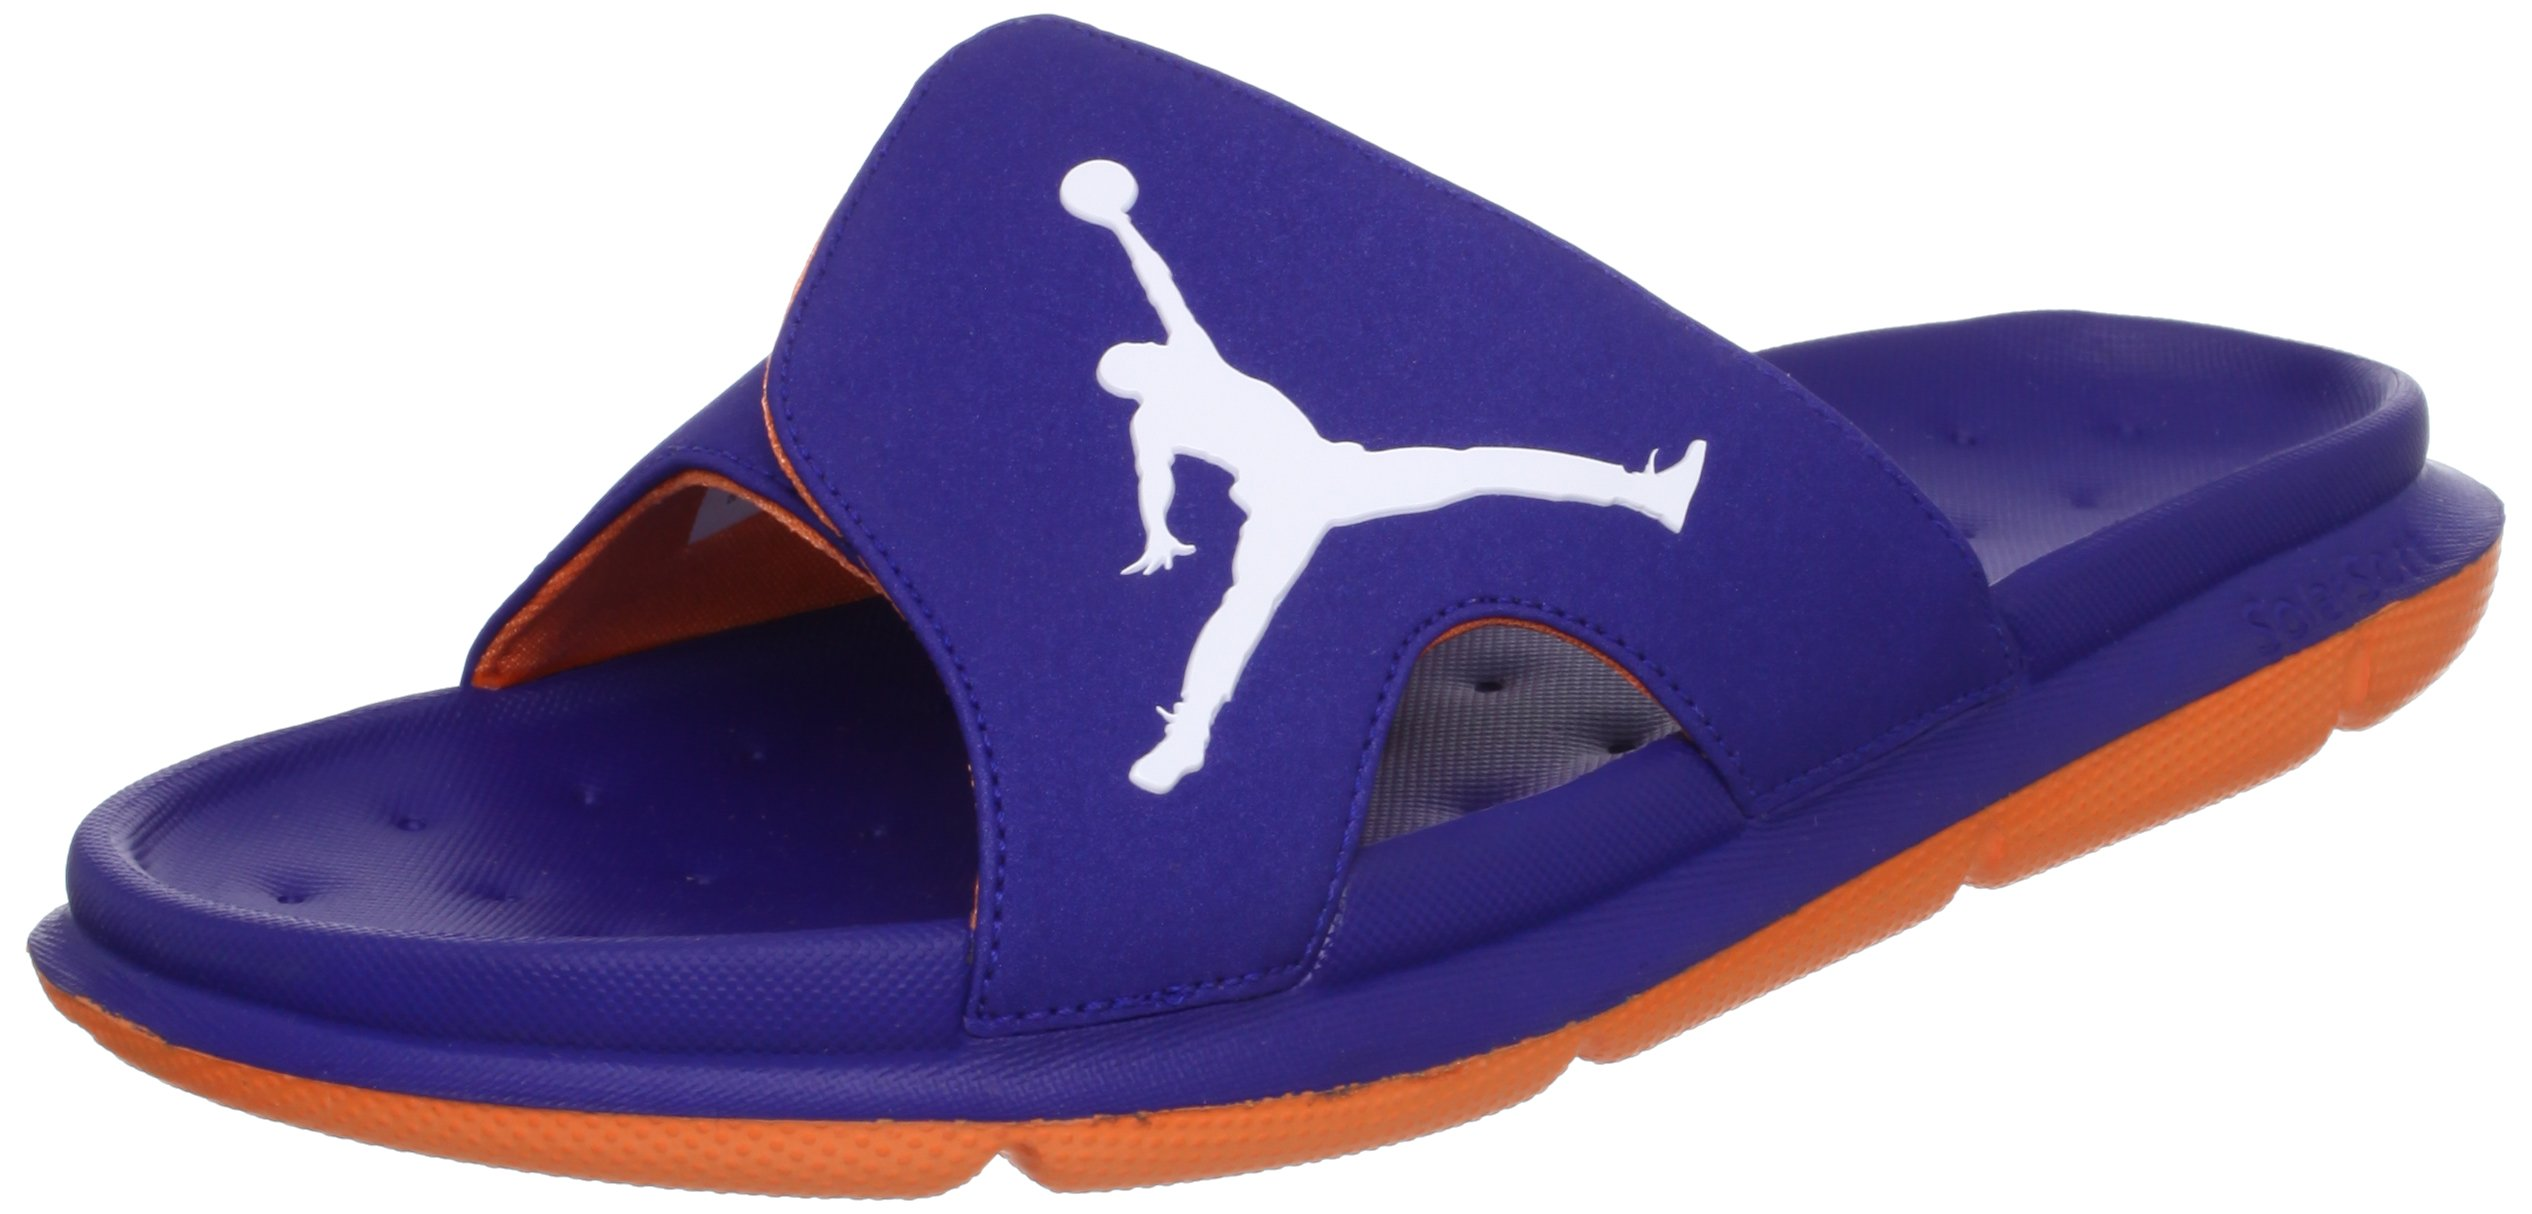 0174add8af8f7 Galleon - Nike Men s NIKE JORDAN RCVR SLIDE SELECT SANDALS 9 Men US (DP  ROYAL BLUE WHITE BRIGHT CTRS)